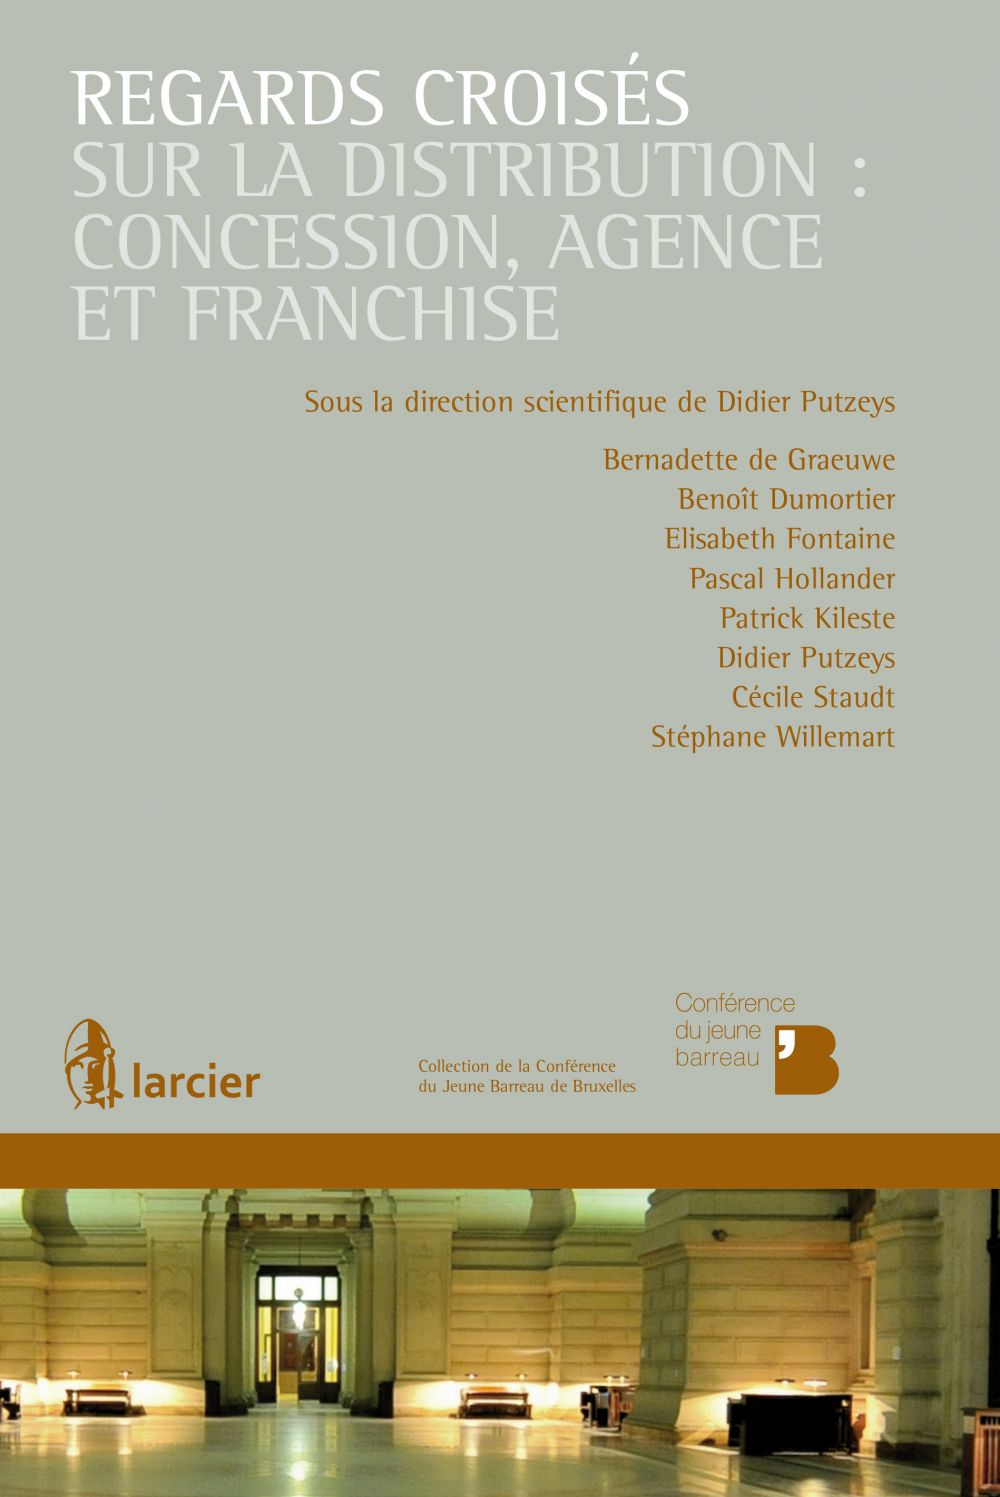 Regards croisés sur la distribution : concession, agence et franchise